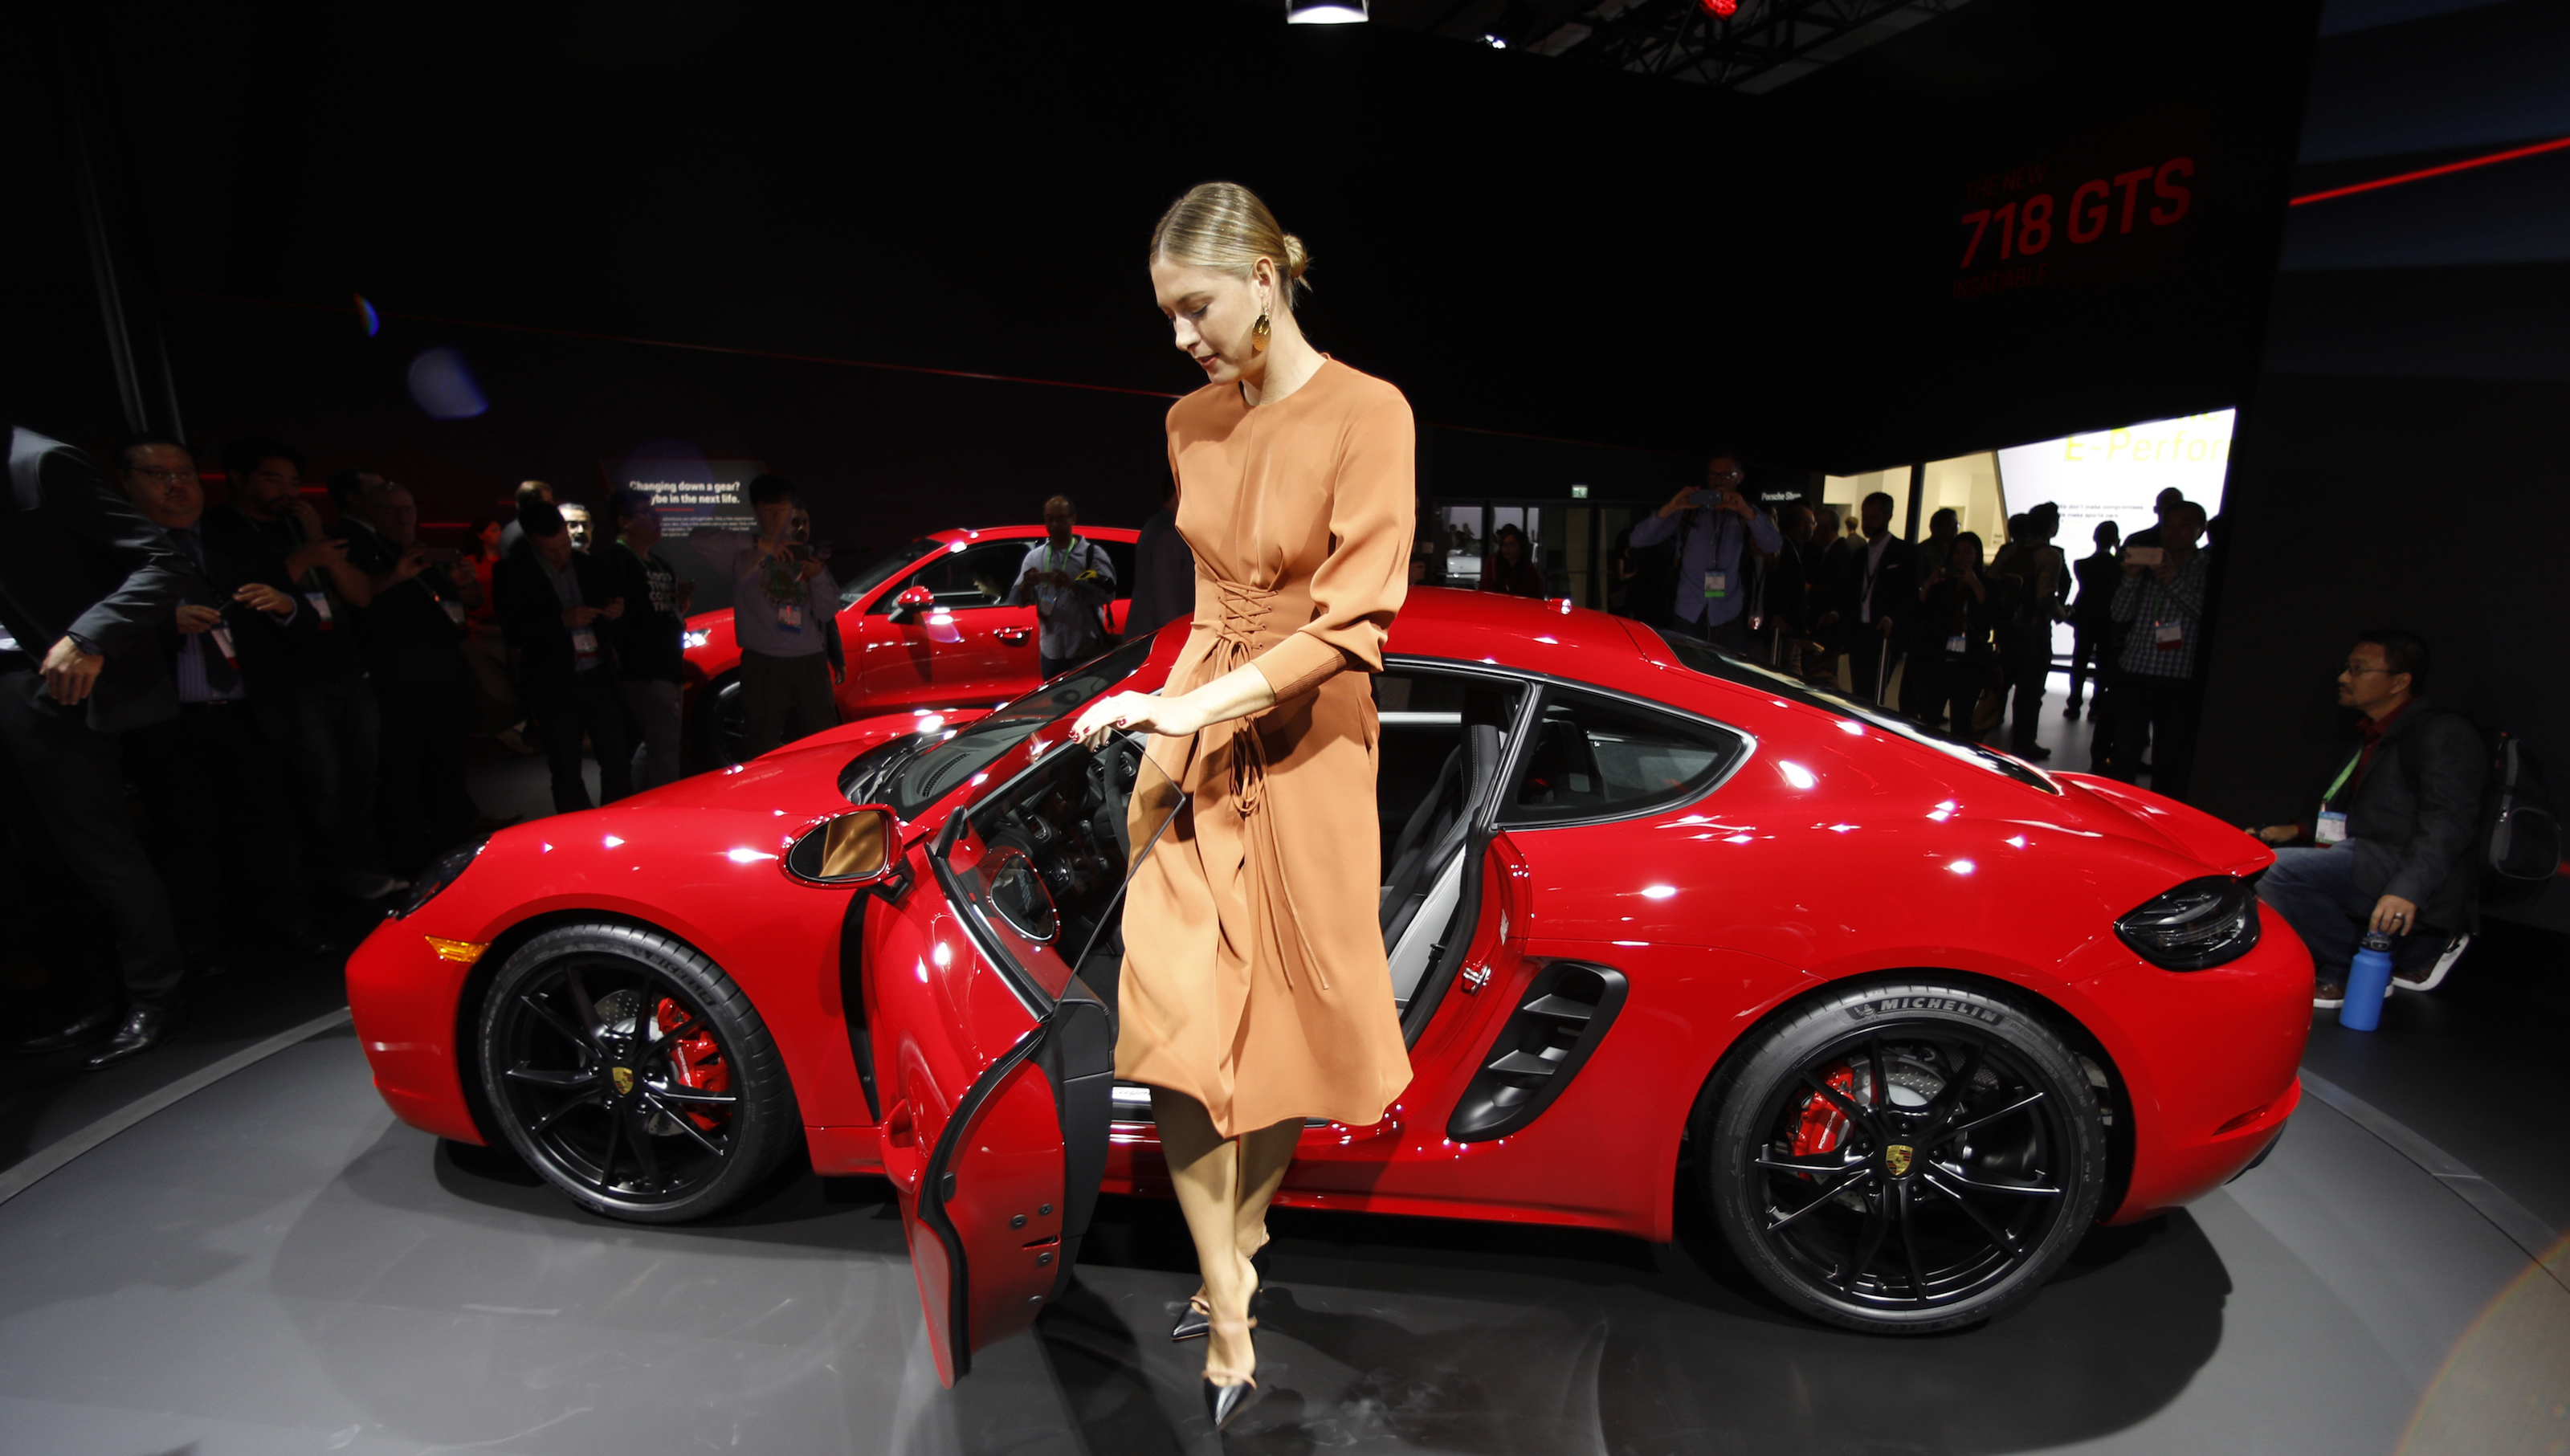 Professional tennis player Maria Sharapova poses next to a Porsche 718 Cayman GTS at the Los Angeles Auto Show in Los Angeles, California U.S. November 29, 2017. REUTERS/Mike Blake - HP1EDBT1JJ96Z